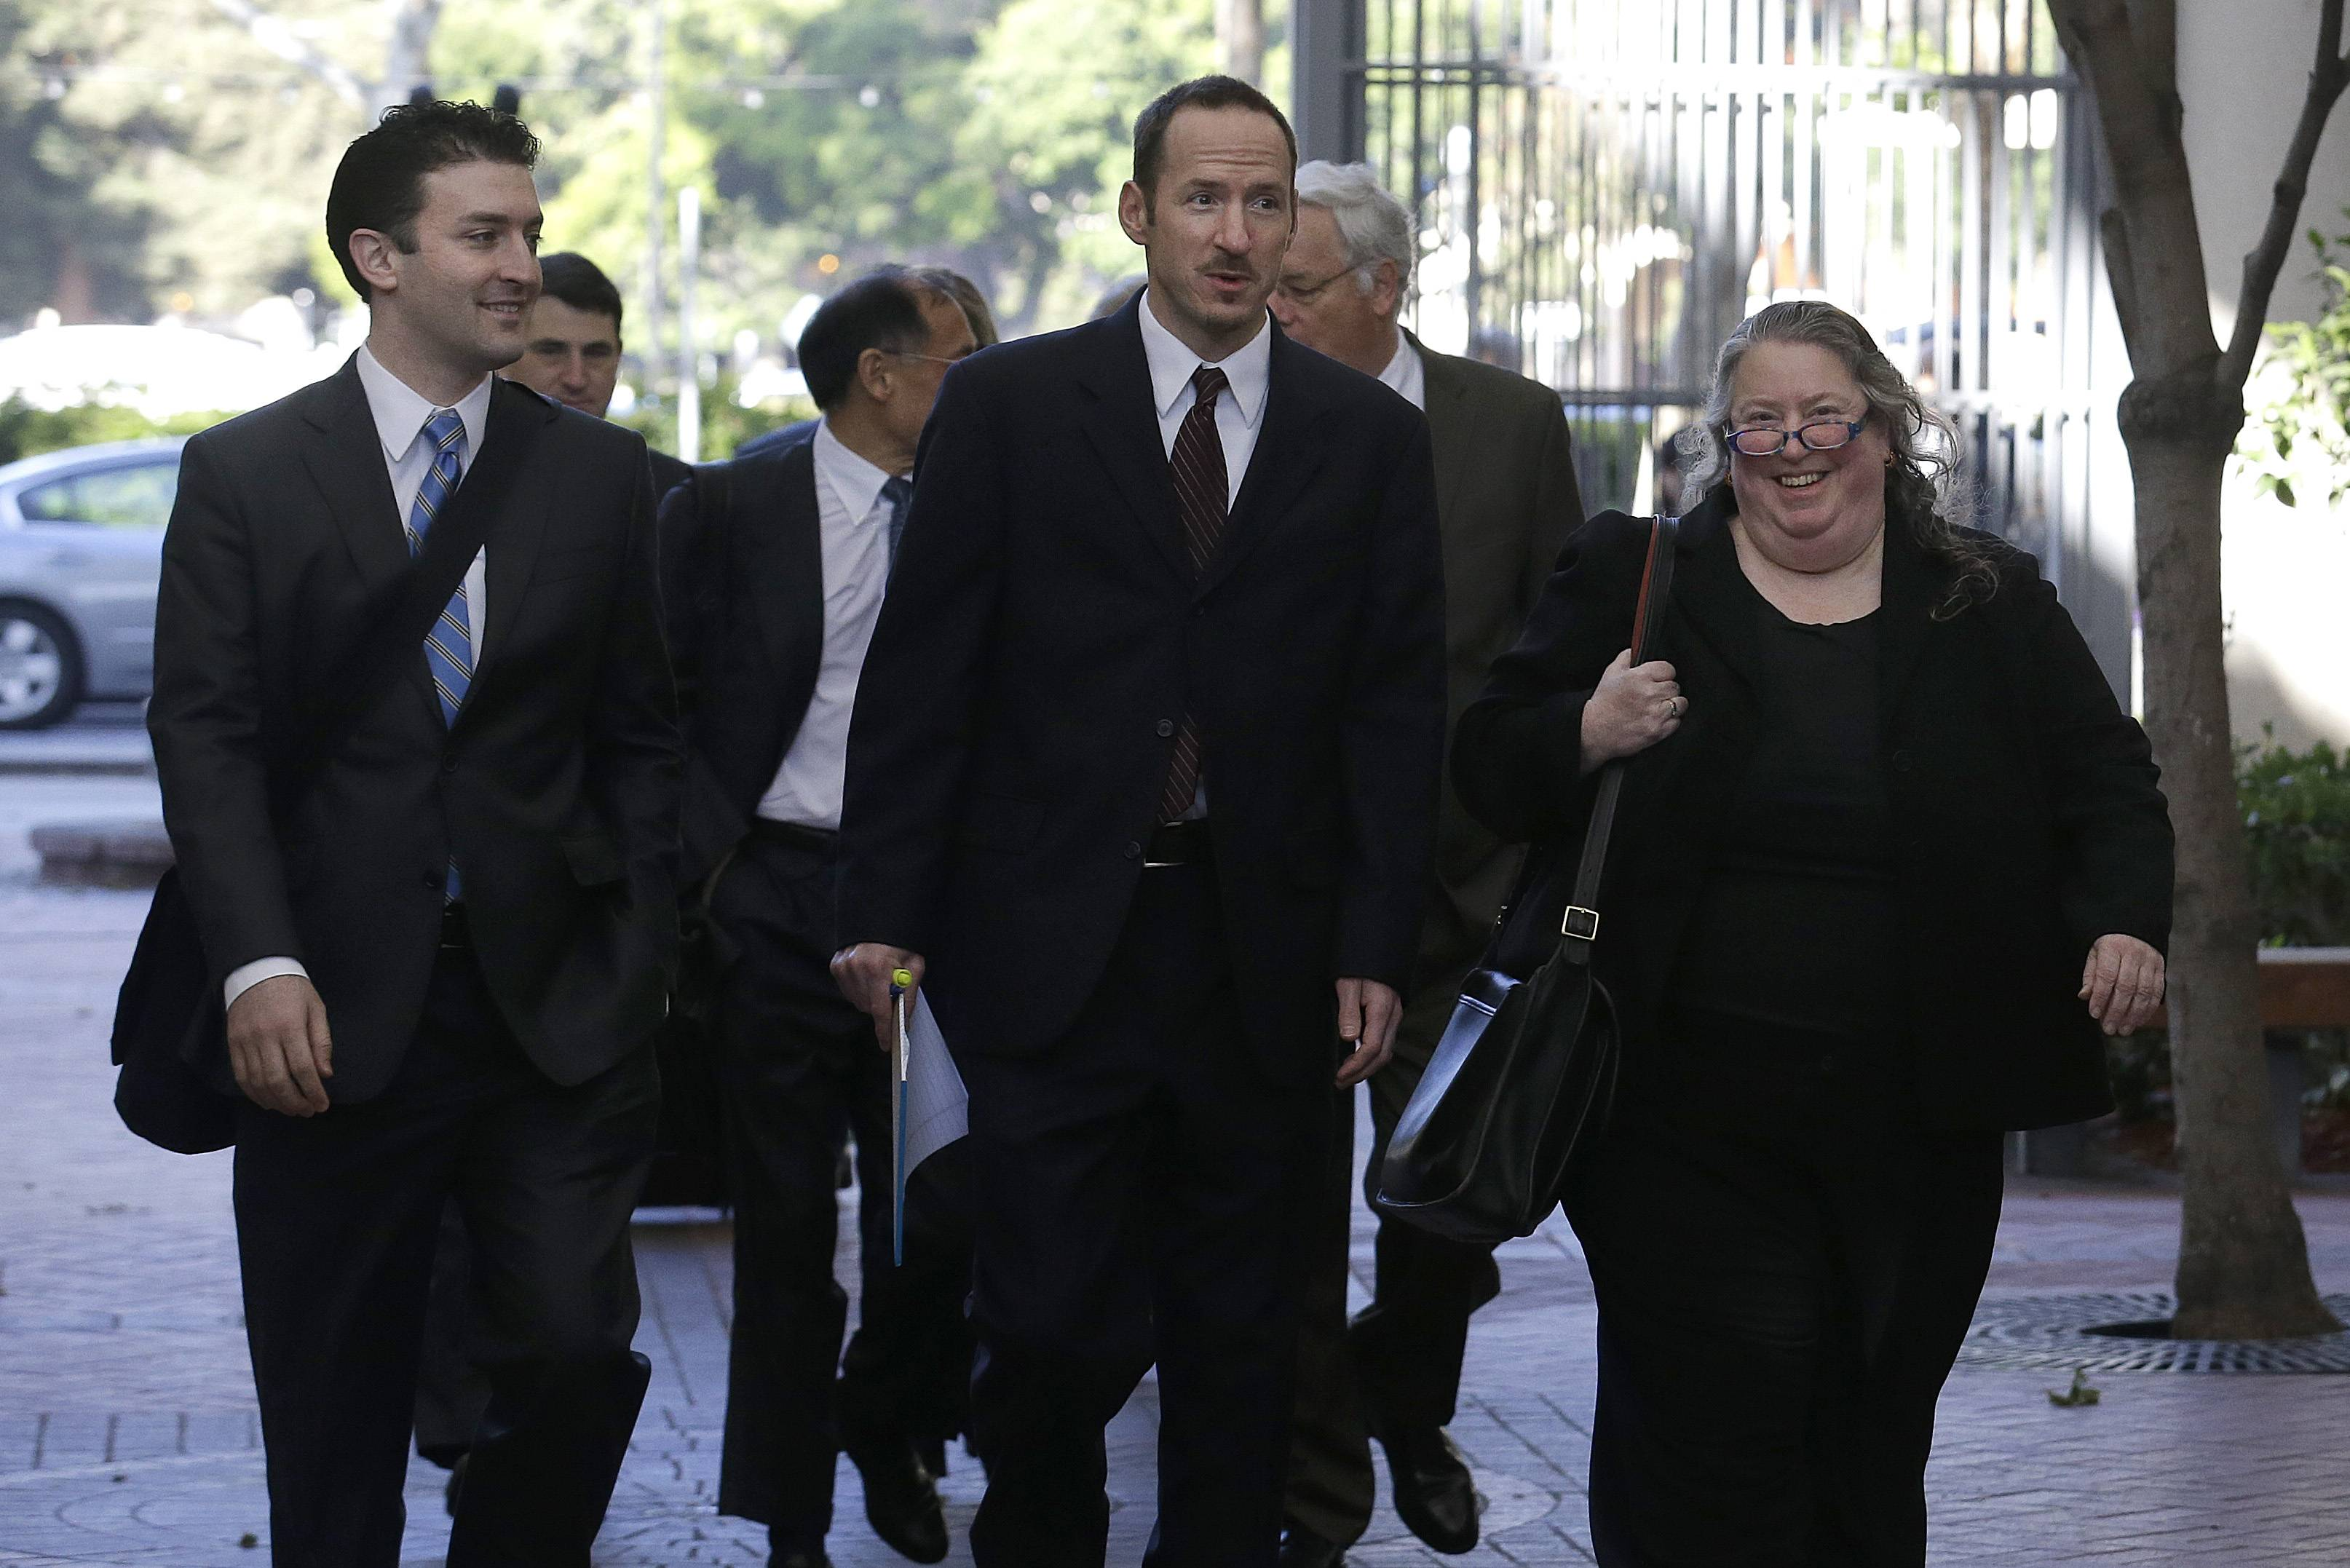 Apple attorney Rachel Krevans, right, walks with others to a federal courthouse in San Jose, Calif. A California jury determined Friday May 2, 2014, that Samsung infringed Apple smartphone patents and awarded $120 million damages.